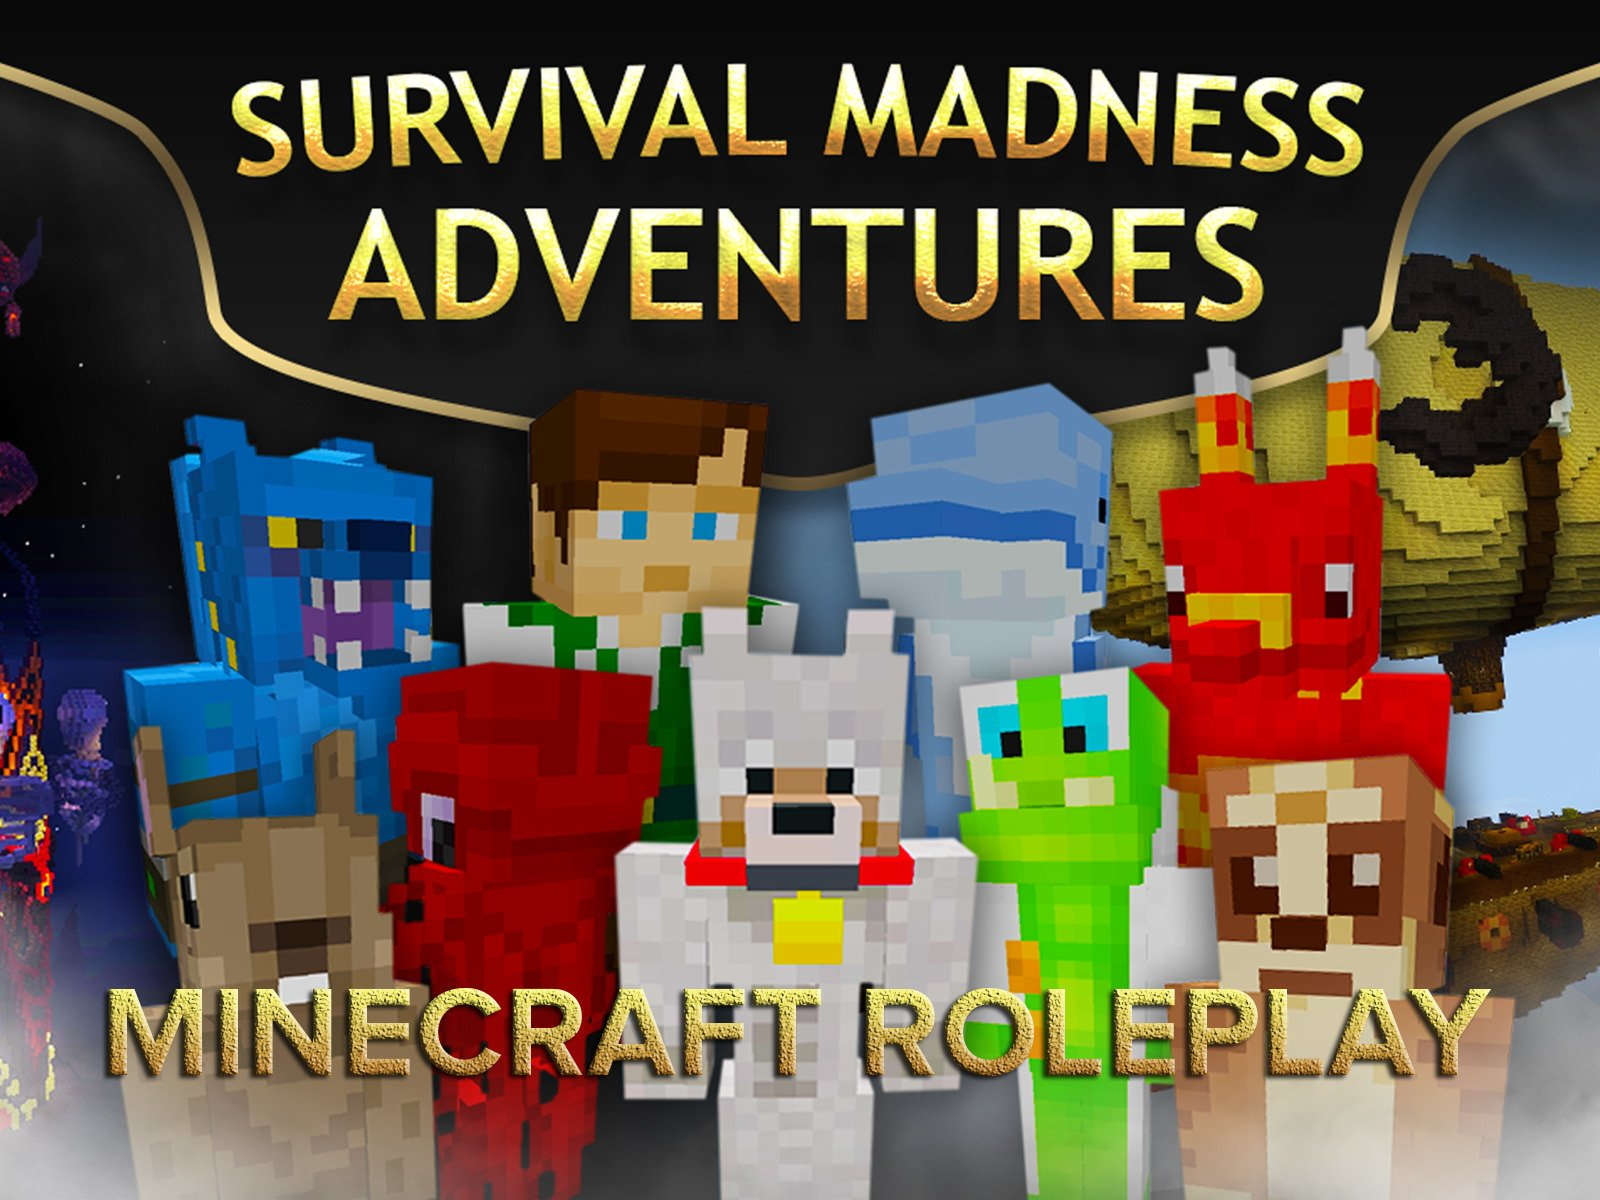 Clip: Survival Madness Adventures (Minecraft Roleplay) on Amazon Prime Video UK